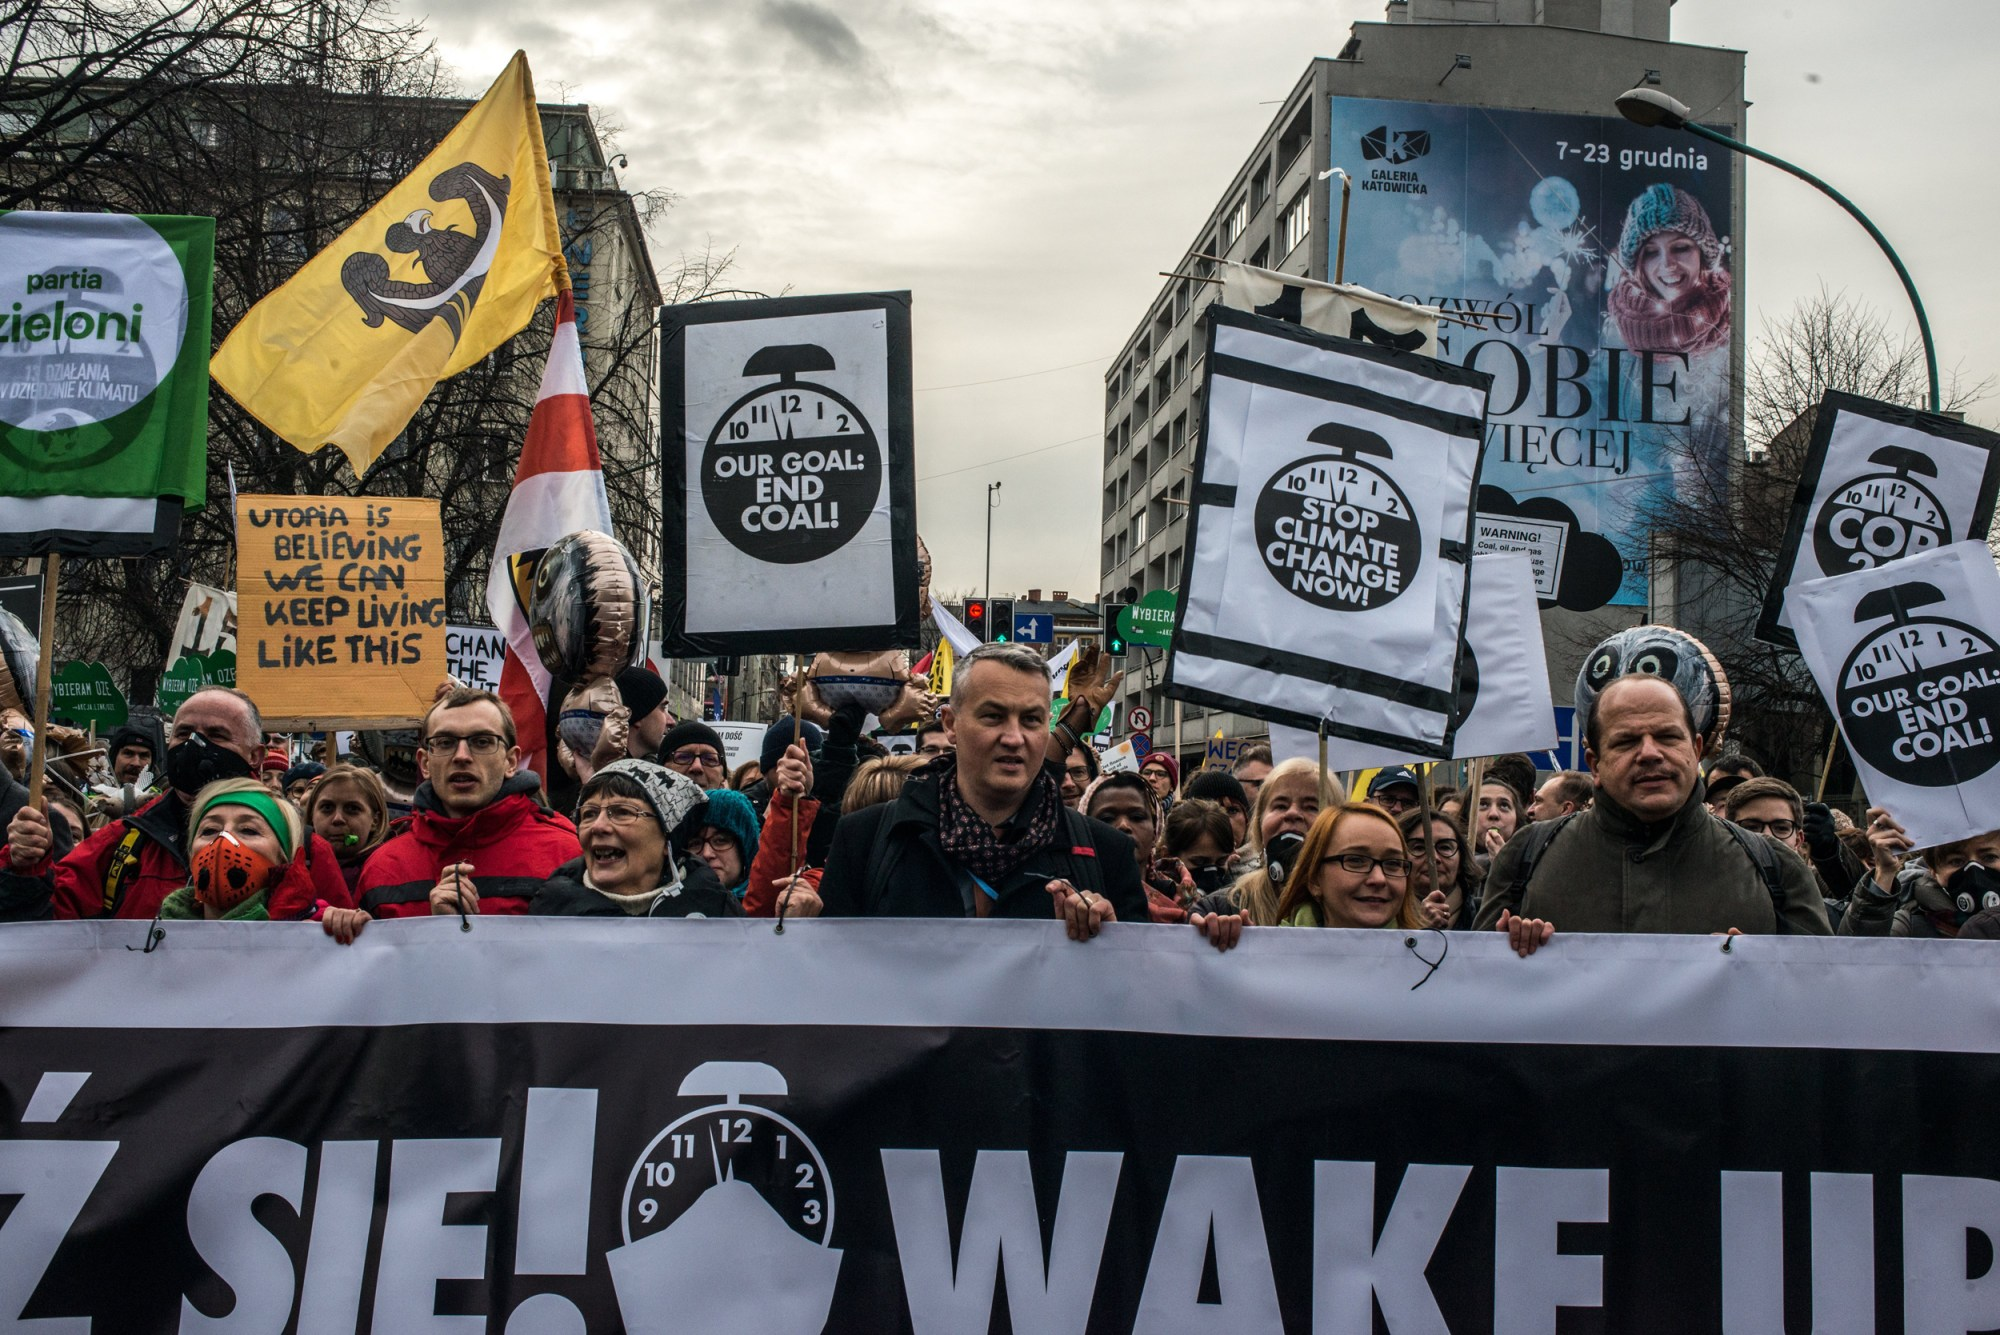 Image: Protesters call for political and economic reforms to combat climate change during the United Nations Summit on Climate Change (COP24) in Katowice, Poland, on Dec. 8, 2018.